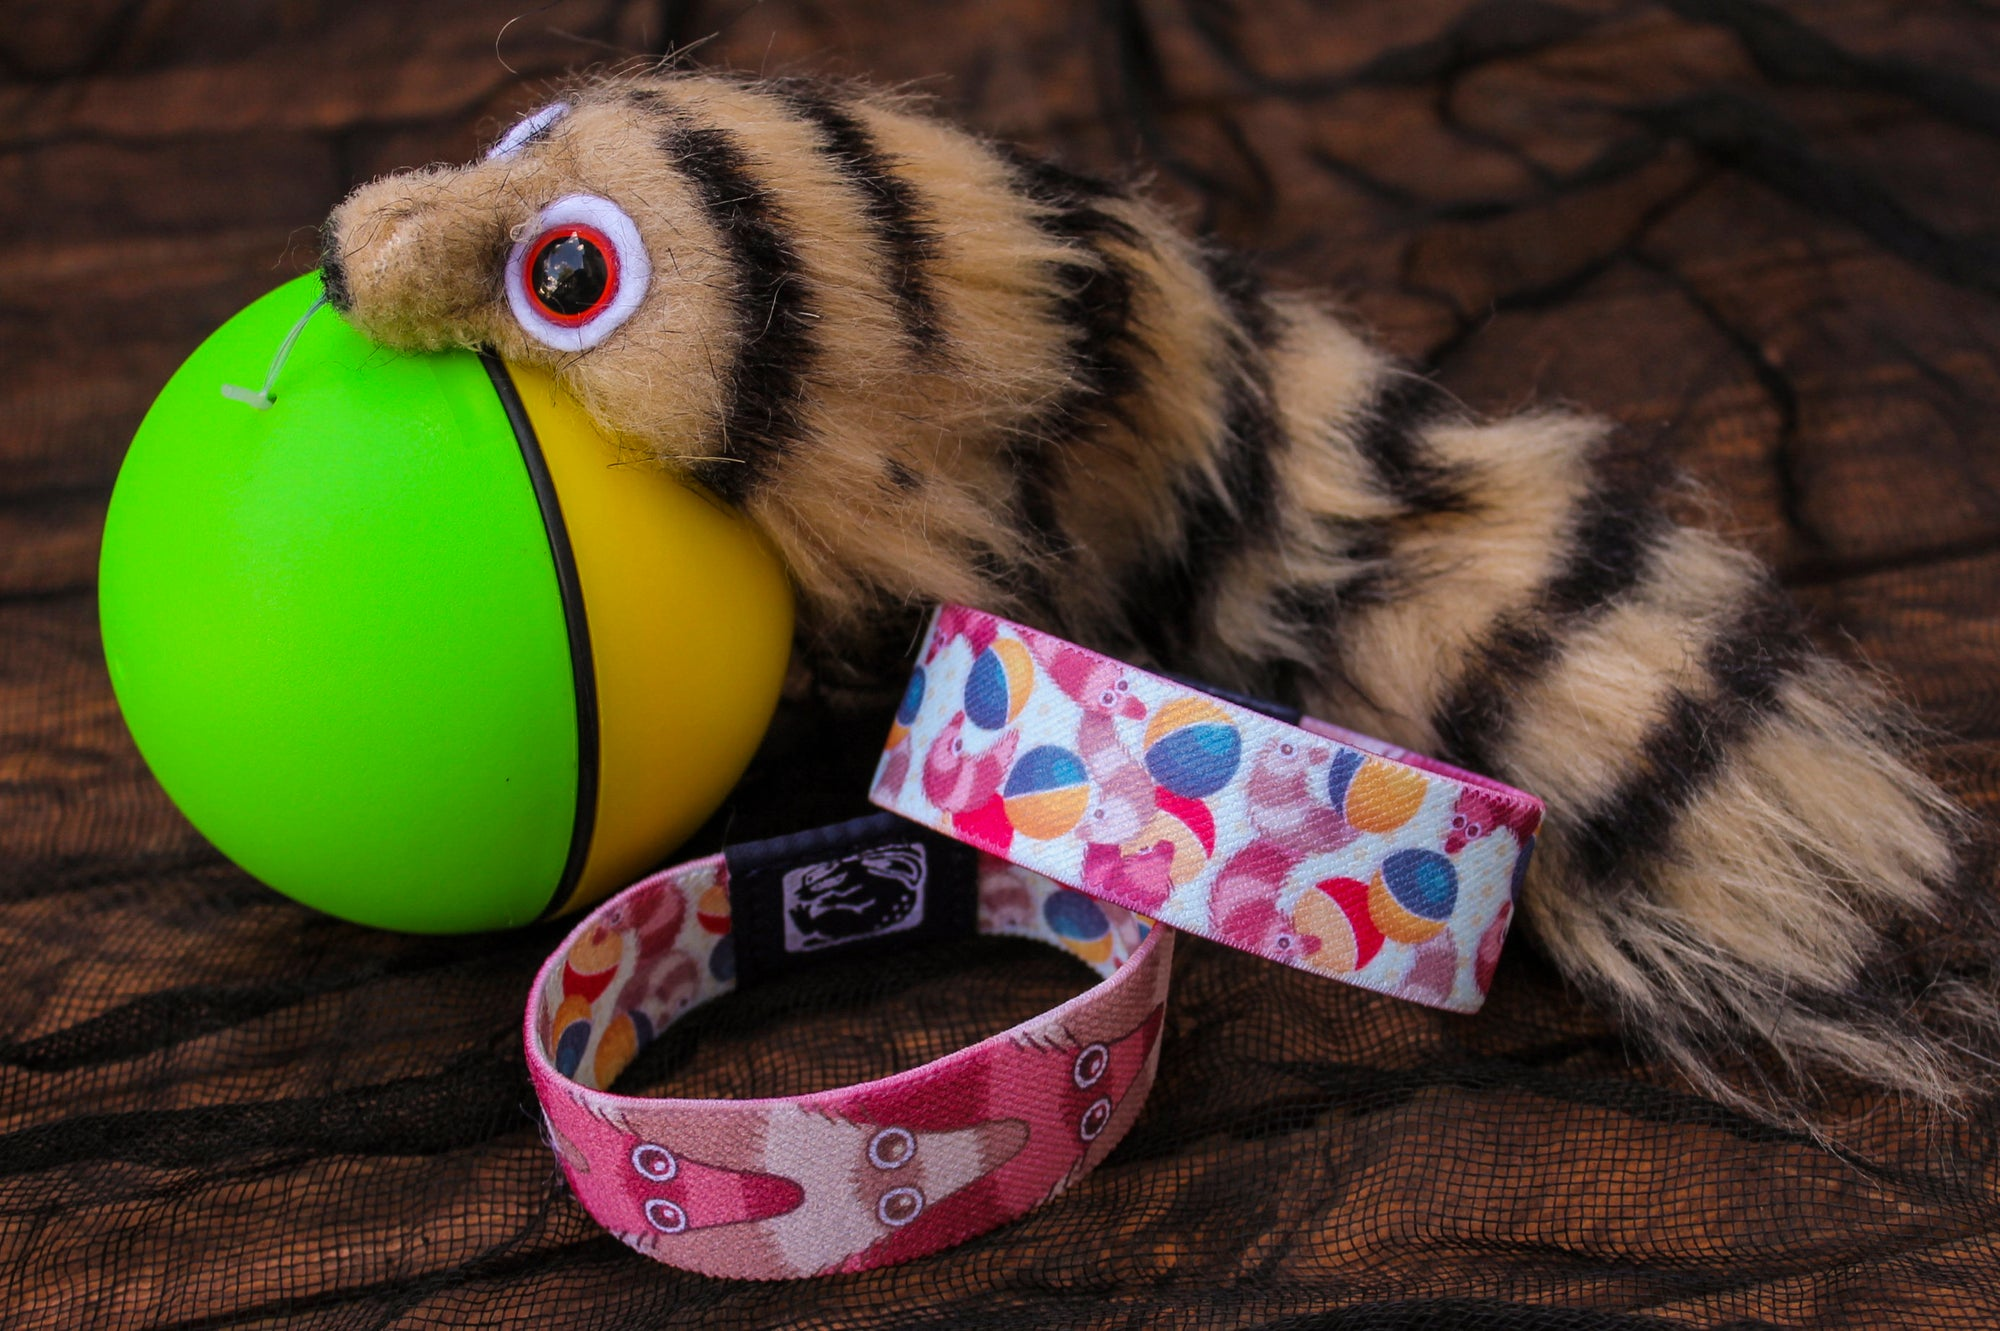 Two identical, reversible thin fabric bracelets flipped in opposite directions to show the complementing pattern set. The one on the left's outward facing pattern is of overlapping brown and blush striped weasel ball critters with big shiny eyes. The one on the right has an outward facing design of a whole mess of weasel-balls twirling and tumbling on a light-colored background. They are in front of a real-life weasel ball.